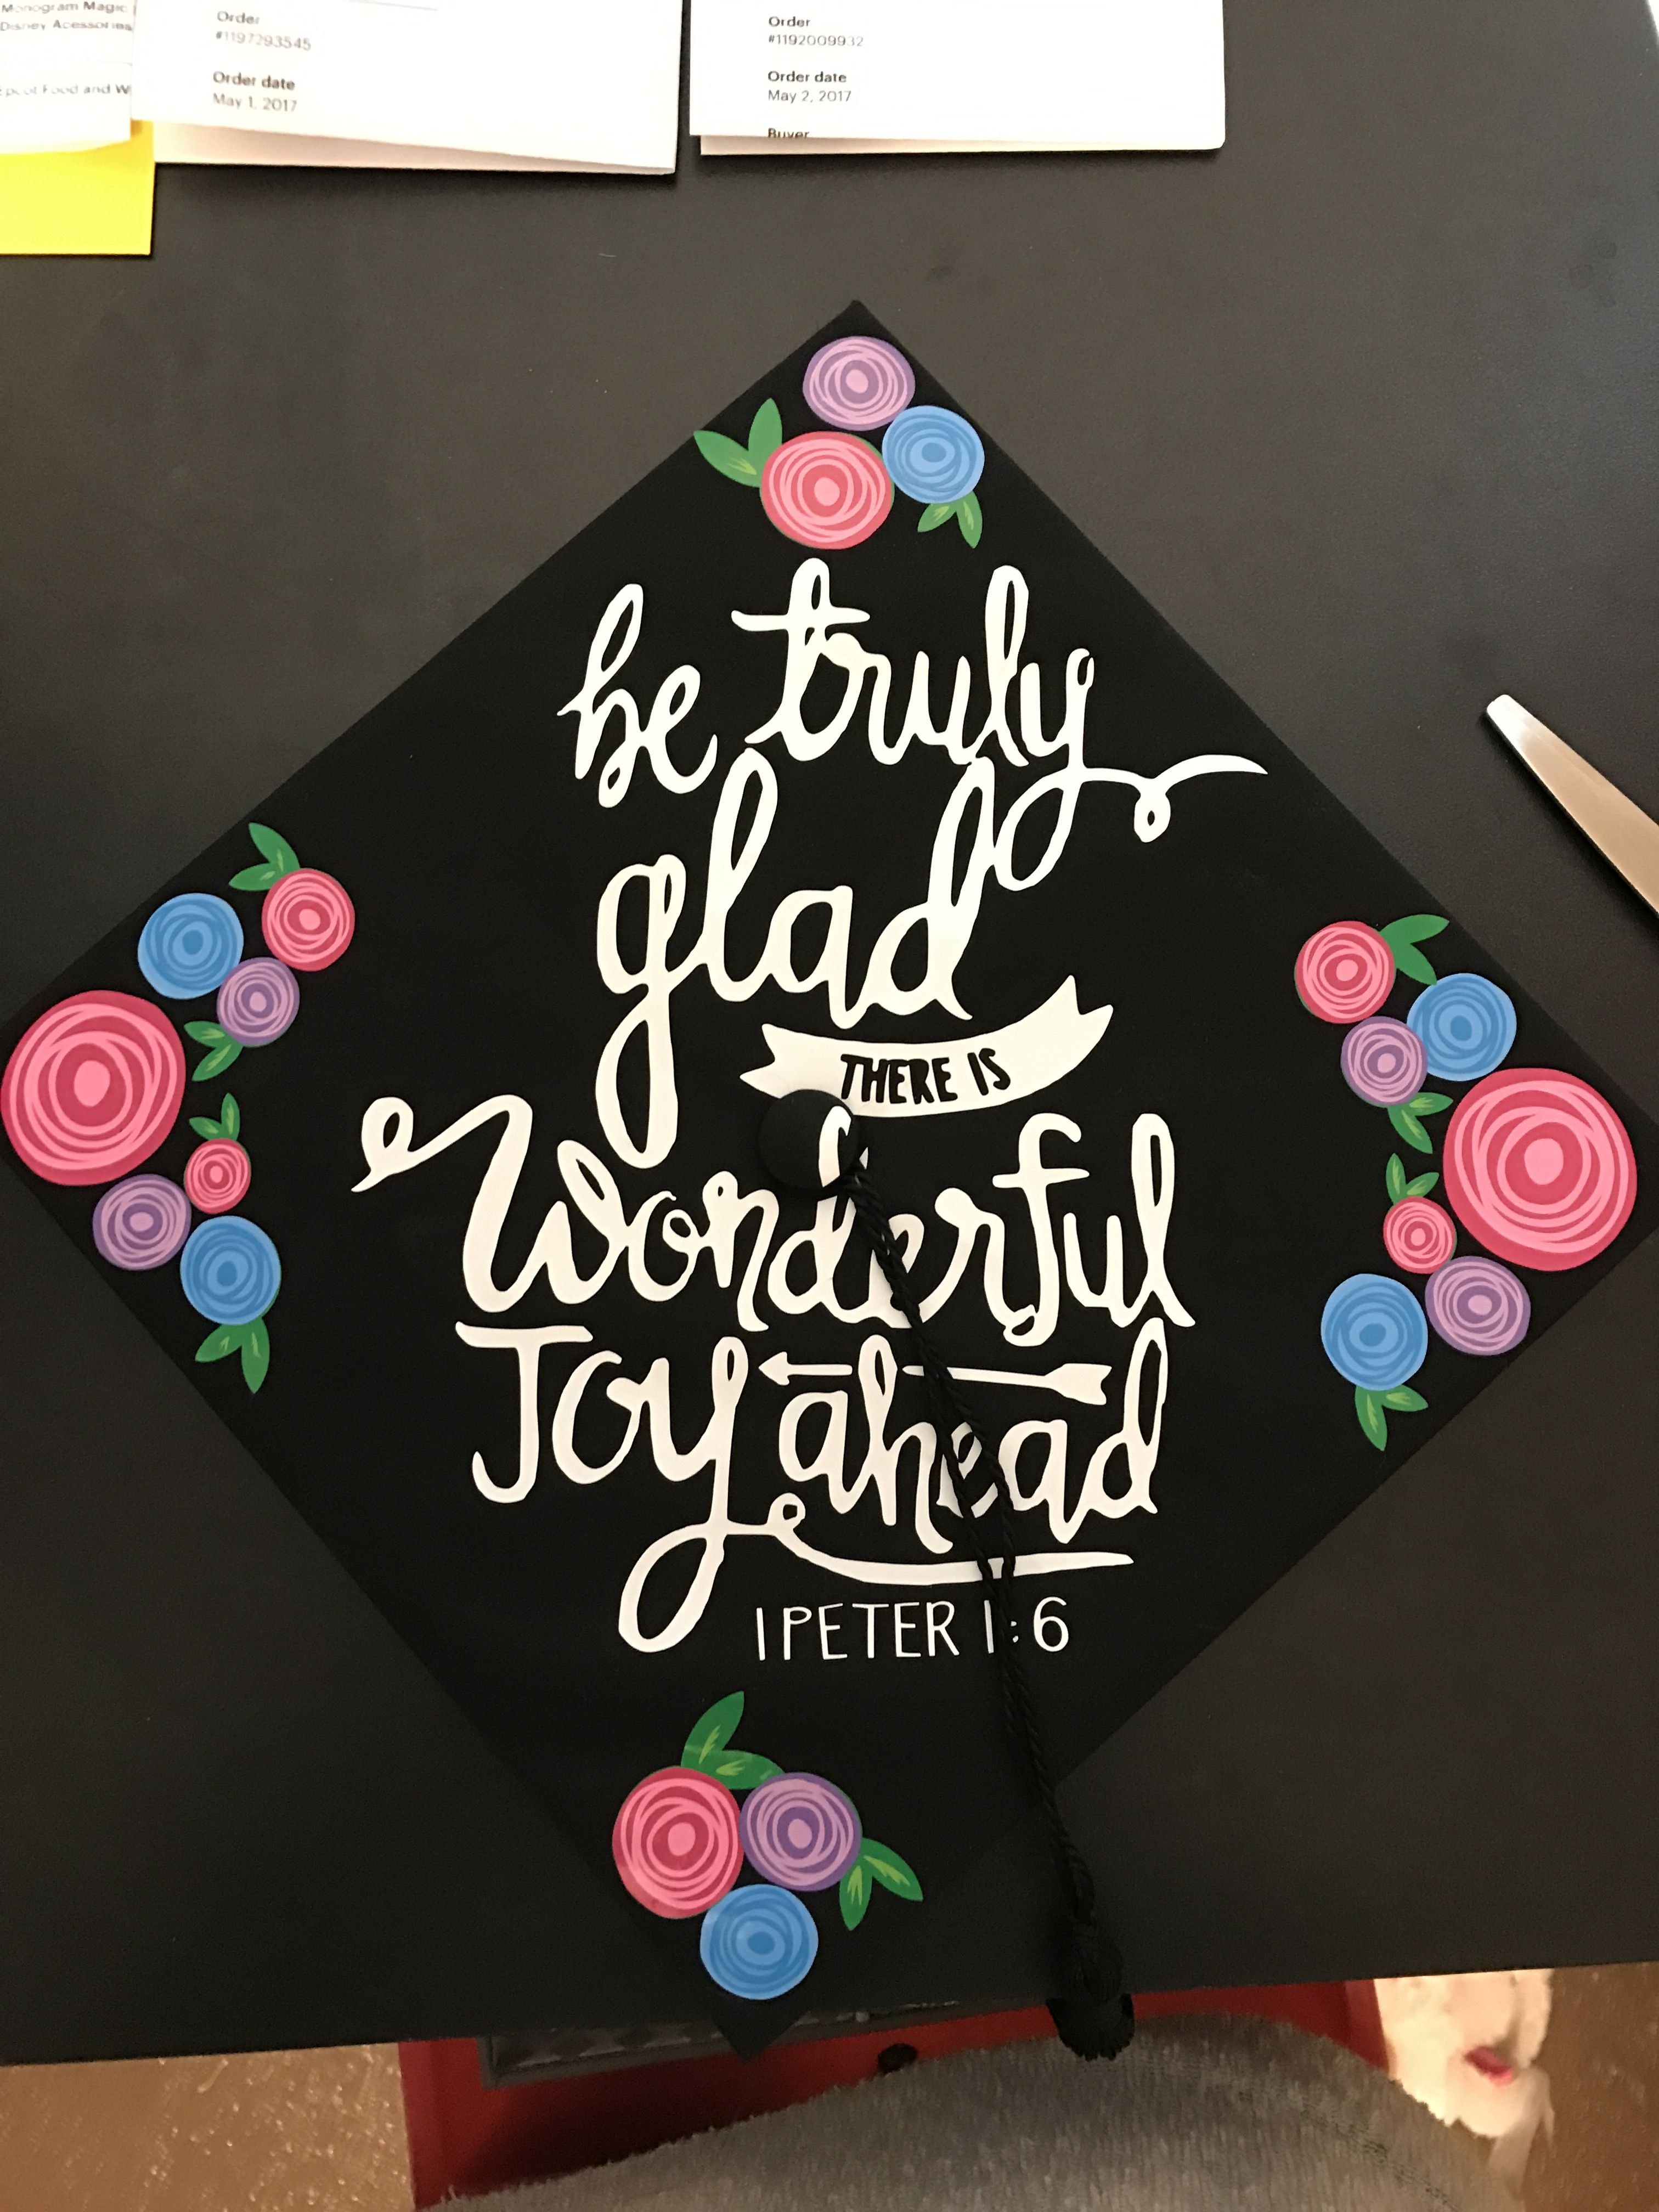 Attractive Graduation Thank You Cards Graduation Invitations Bible Verses Bible Verse Graduation Hat Design Bible Verse Graduation Hat Design Bible Verses